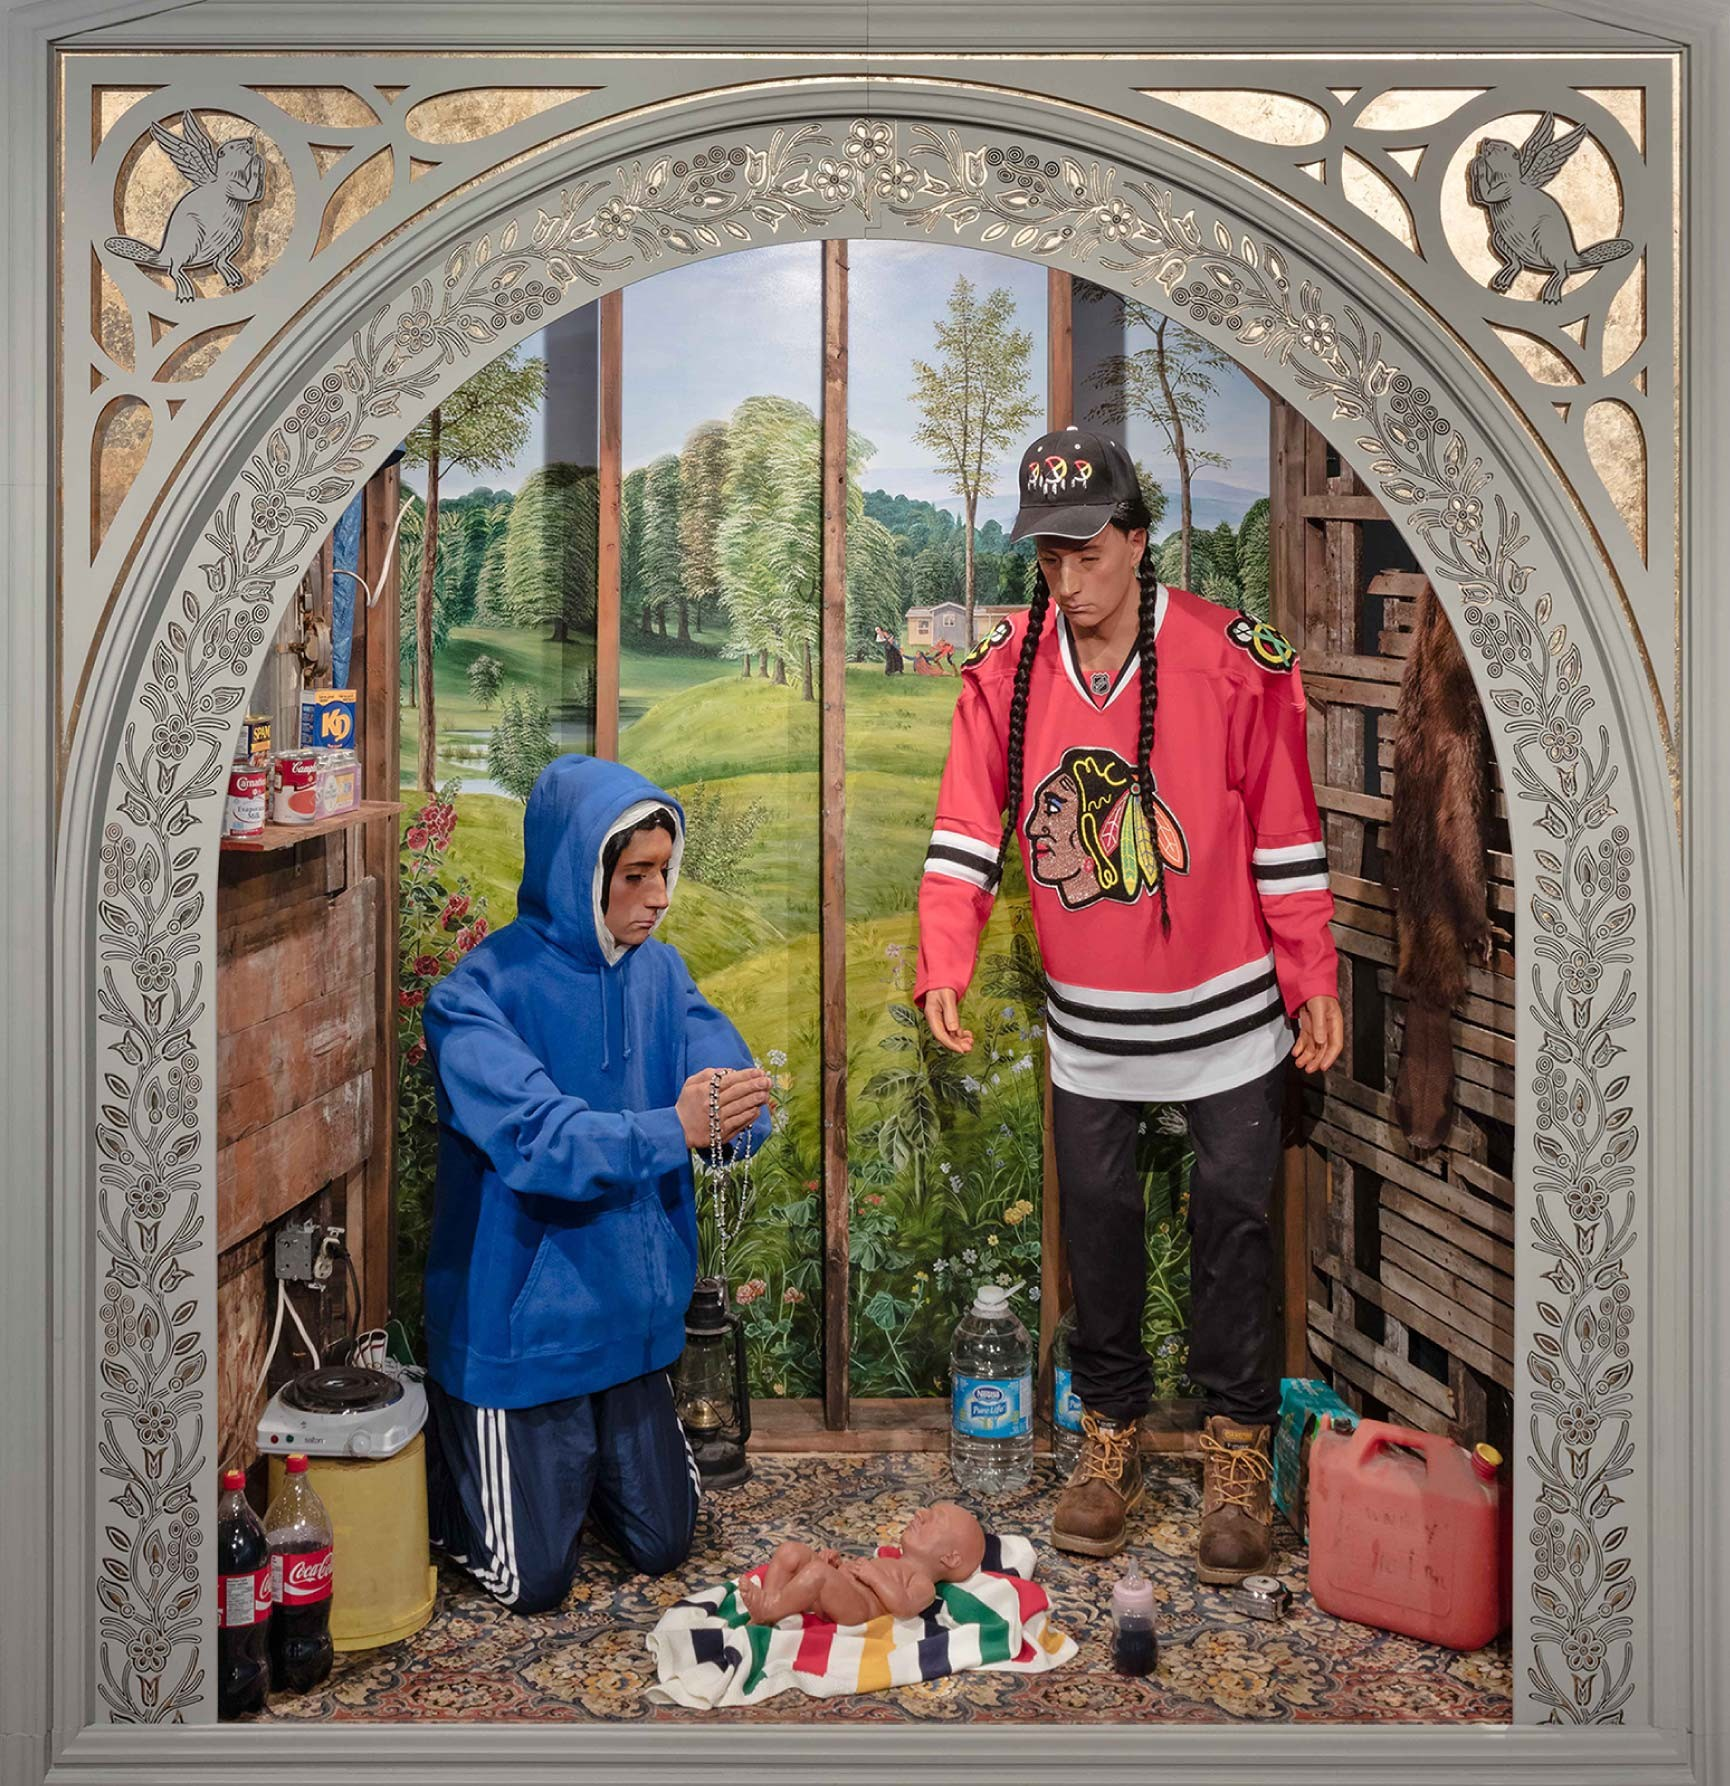 """""""Nativity Scene"""", a mixed media installation by artist Kent Monkman depicts life on Indigenous reserves in Canada"""